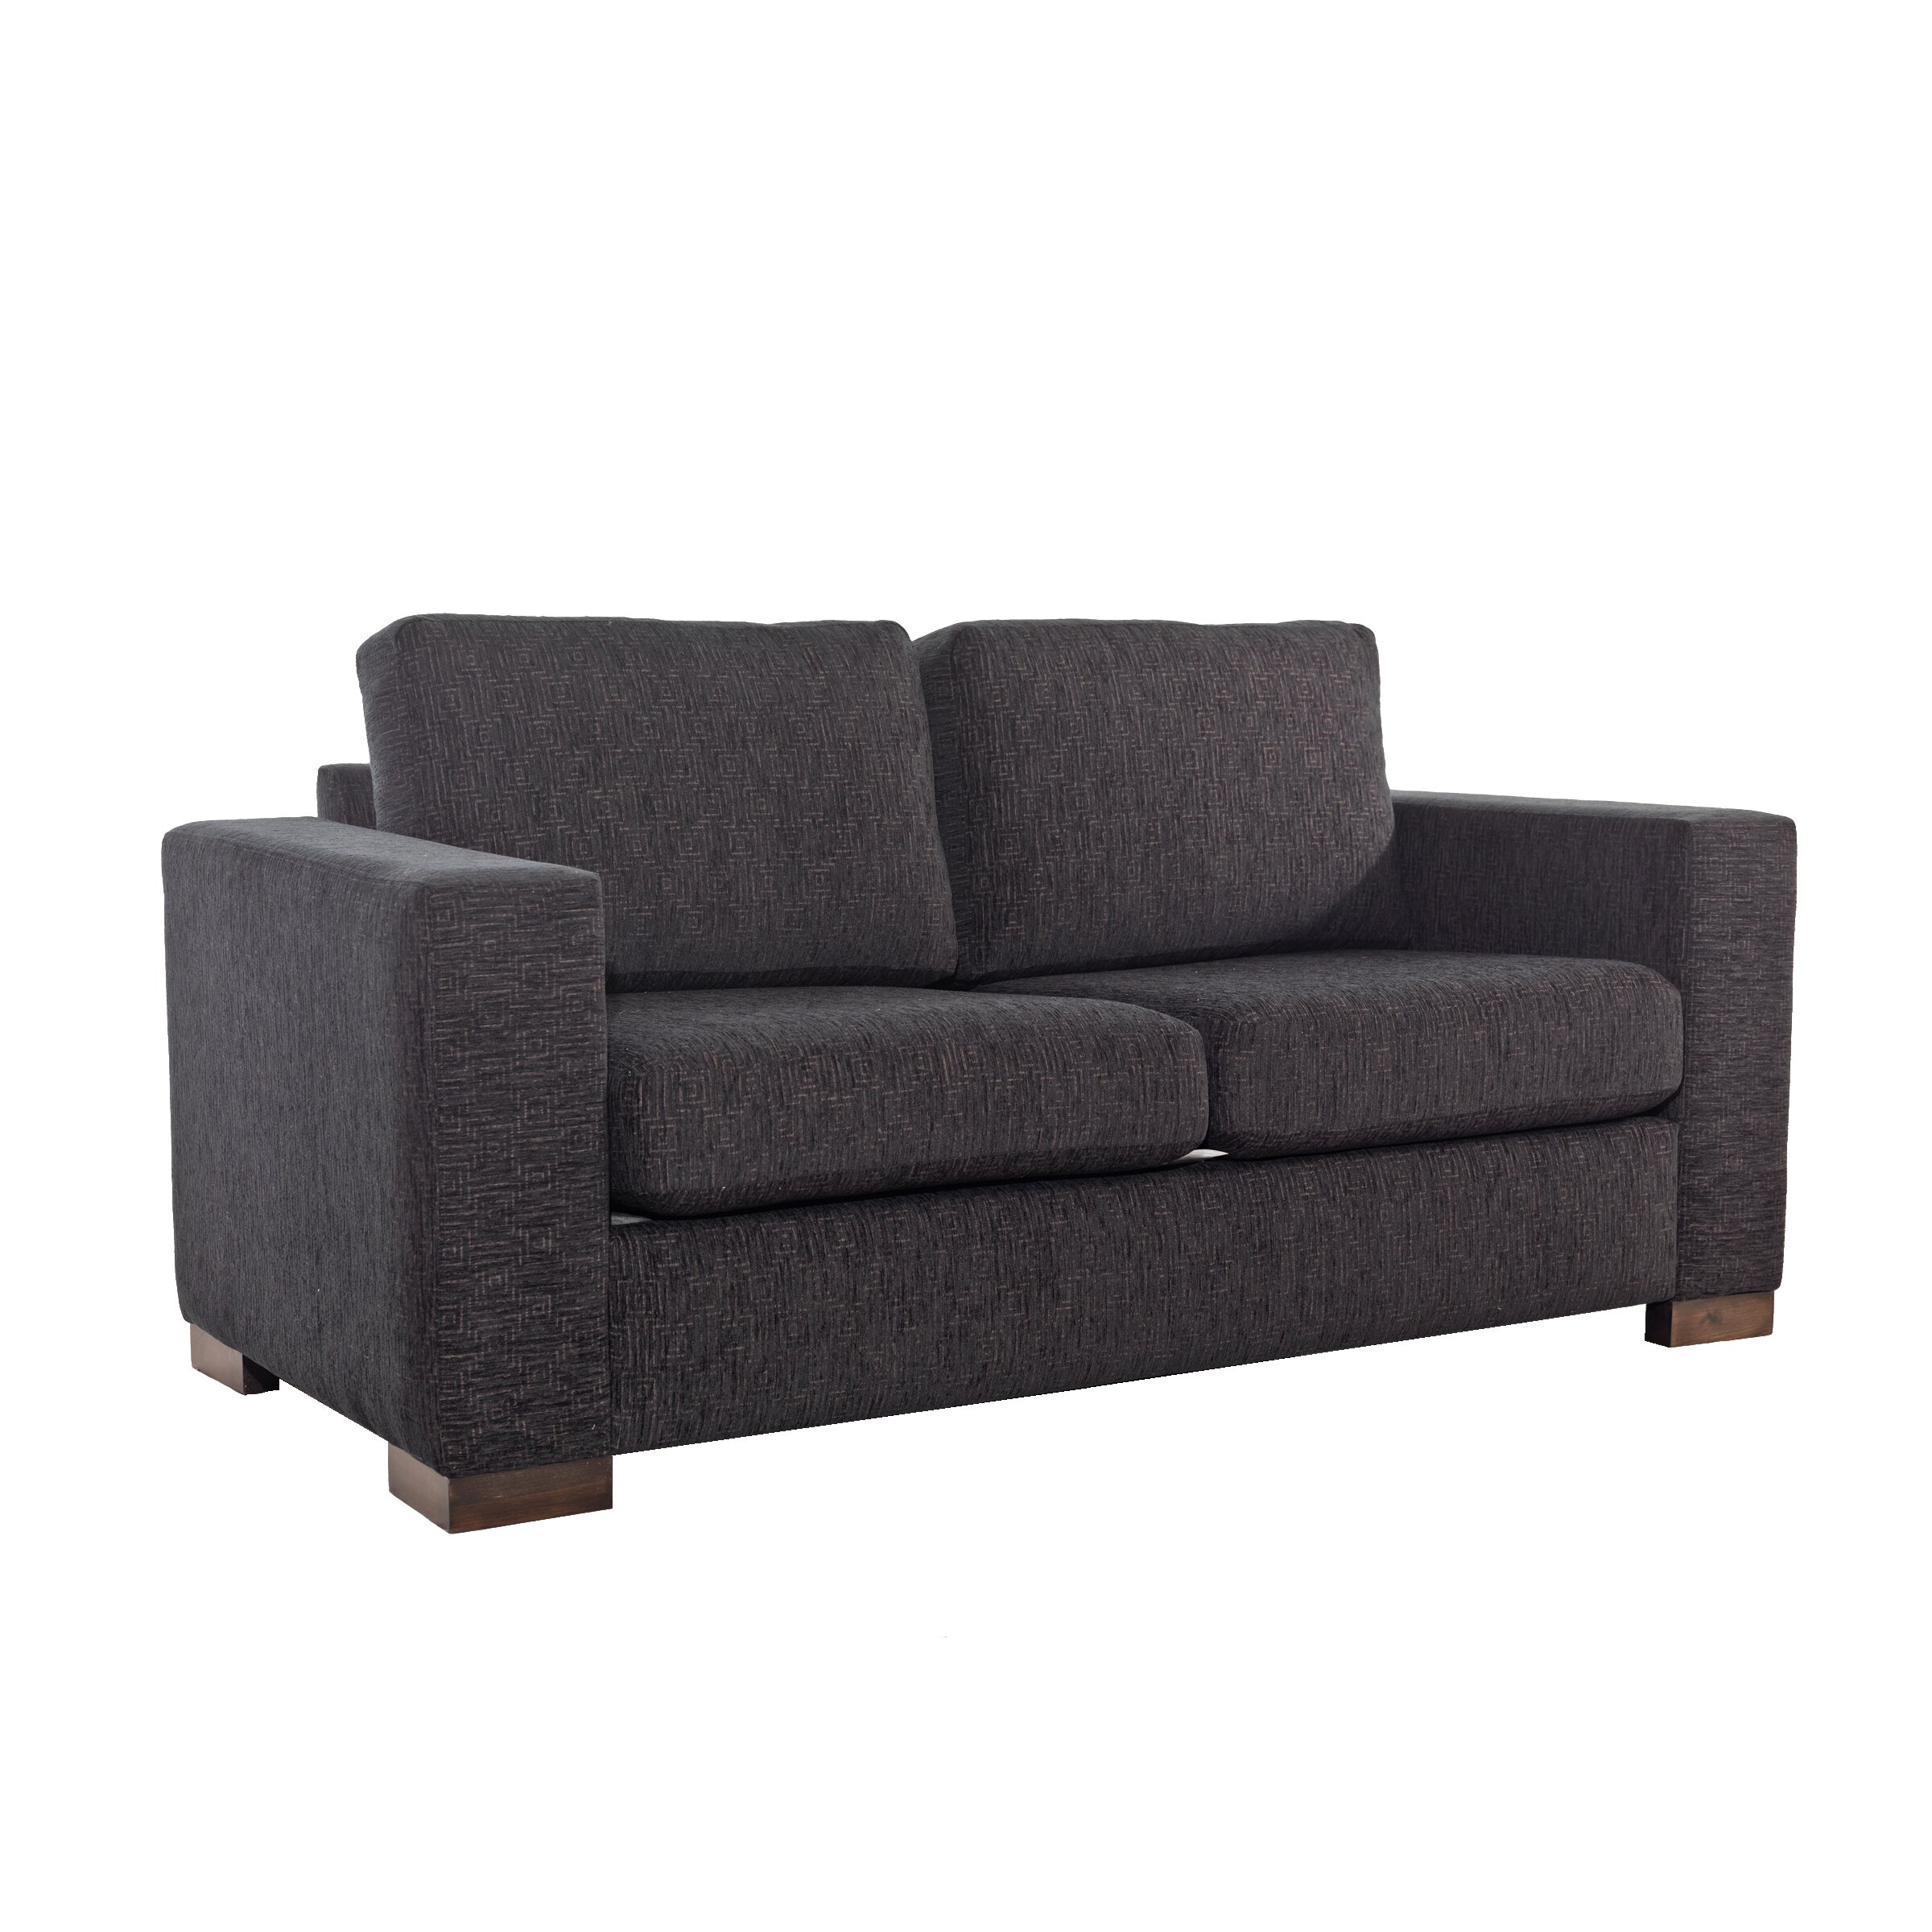 uk icon design 2 sitzer schlafsofa french. Black Bedroom Furniture Sets. Home Design Ideas